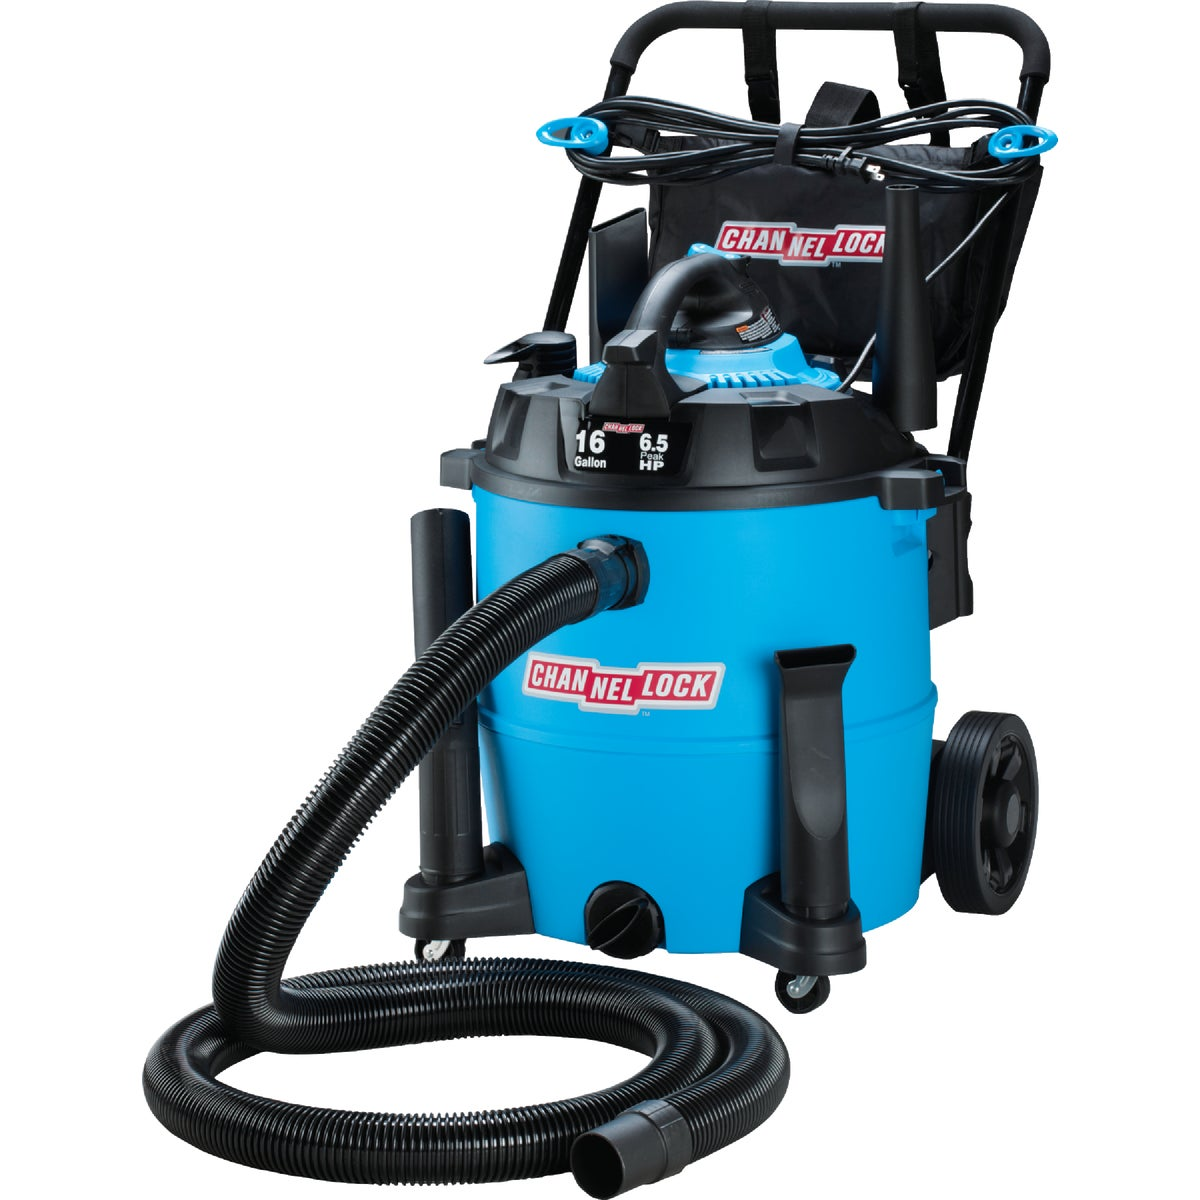 16GAL 6.5HP WET/DRY VAC - VBV1612.CL by Channellock®